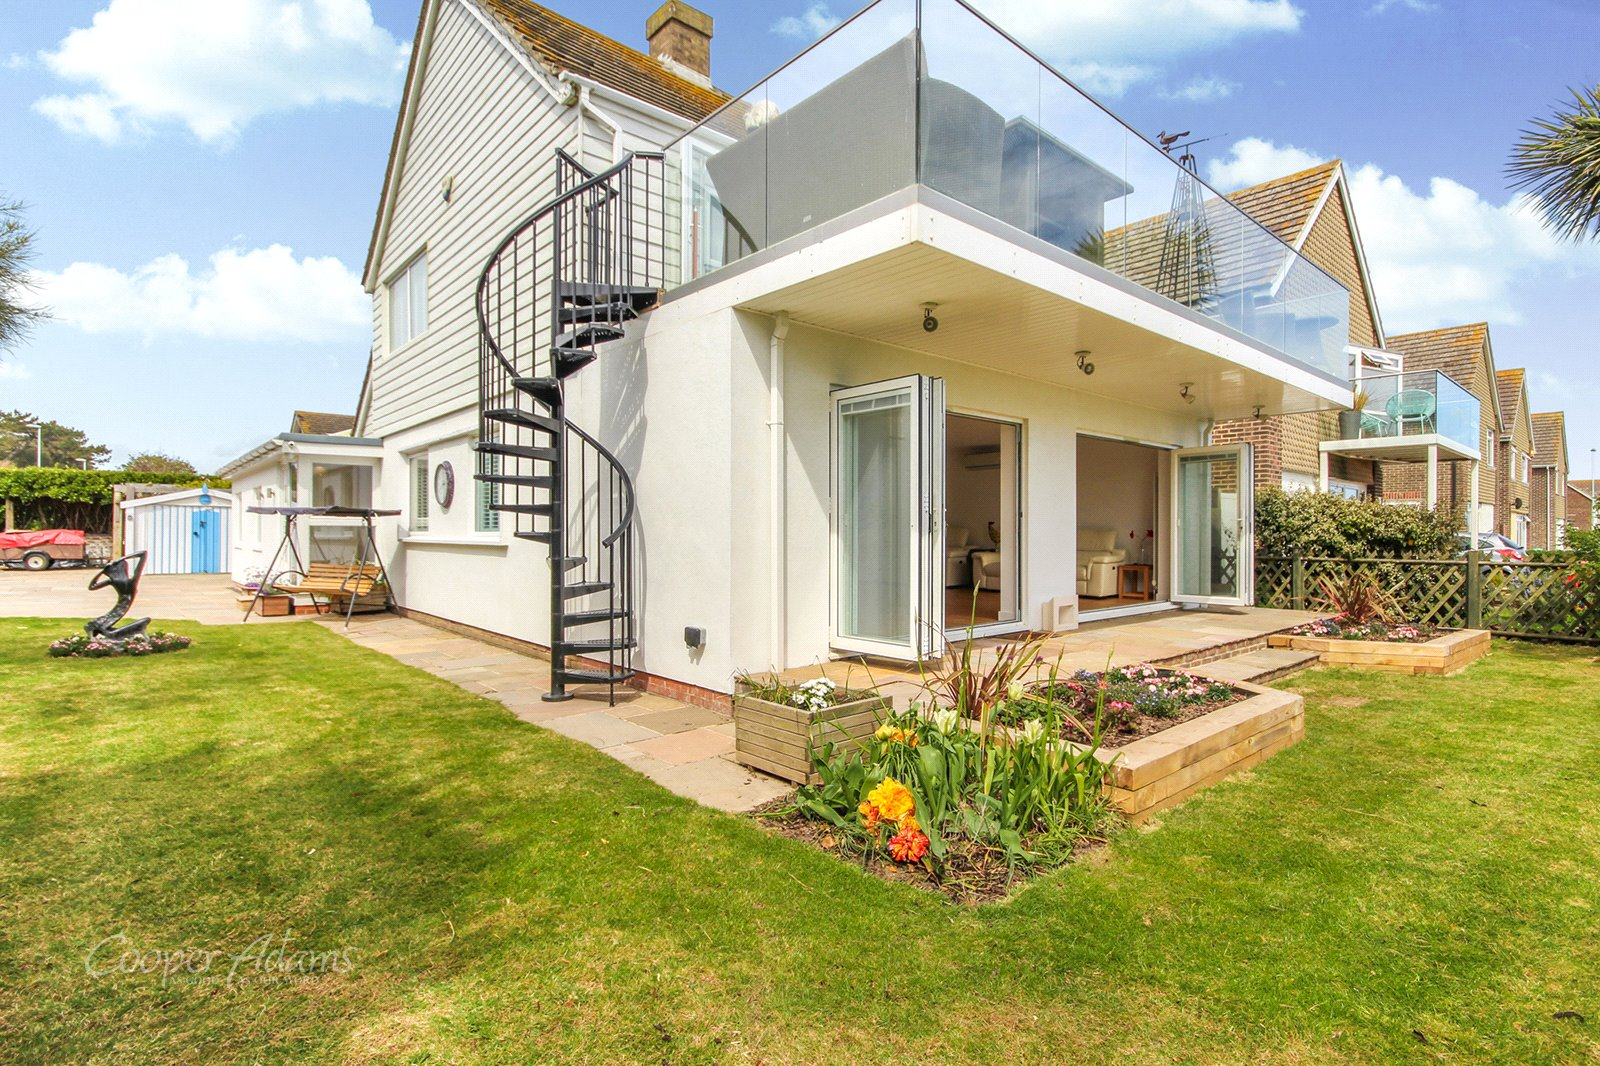 4 bed house for sale in Sea Lane, Goring-by-Sea, BN12